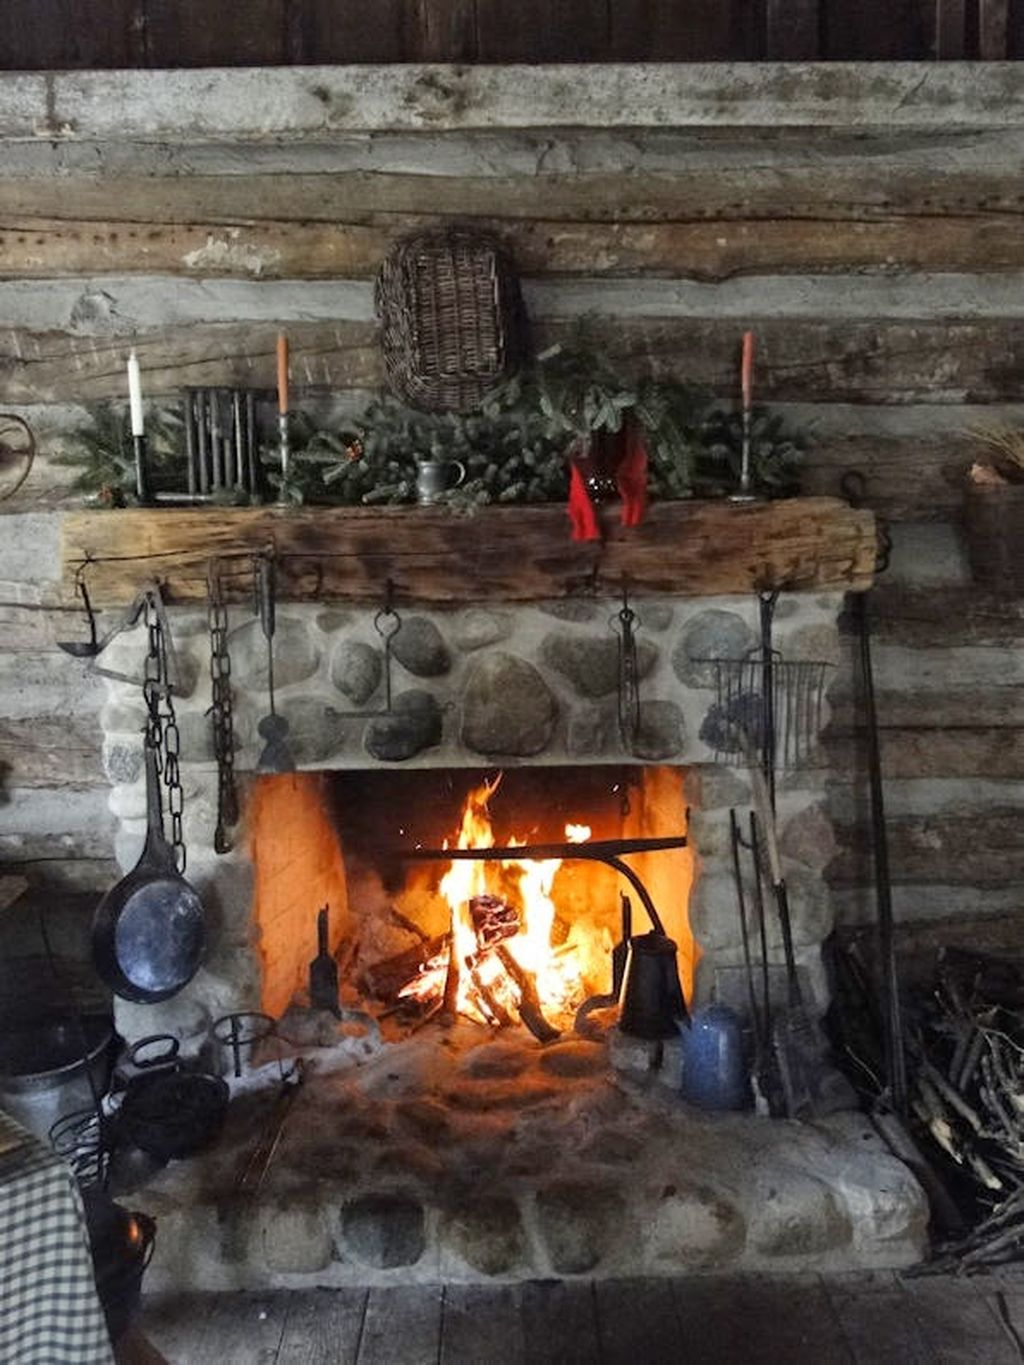 Inspiring Rustic Christmas Fireplace Ideas To Makes Your Home Warmer 77